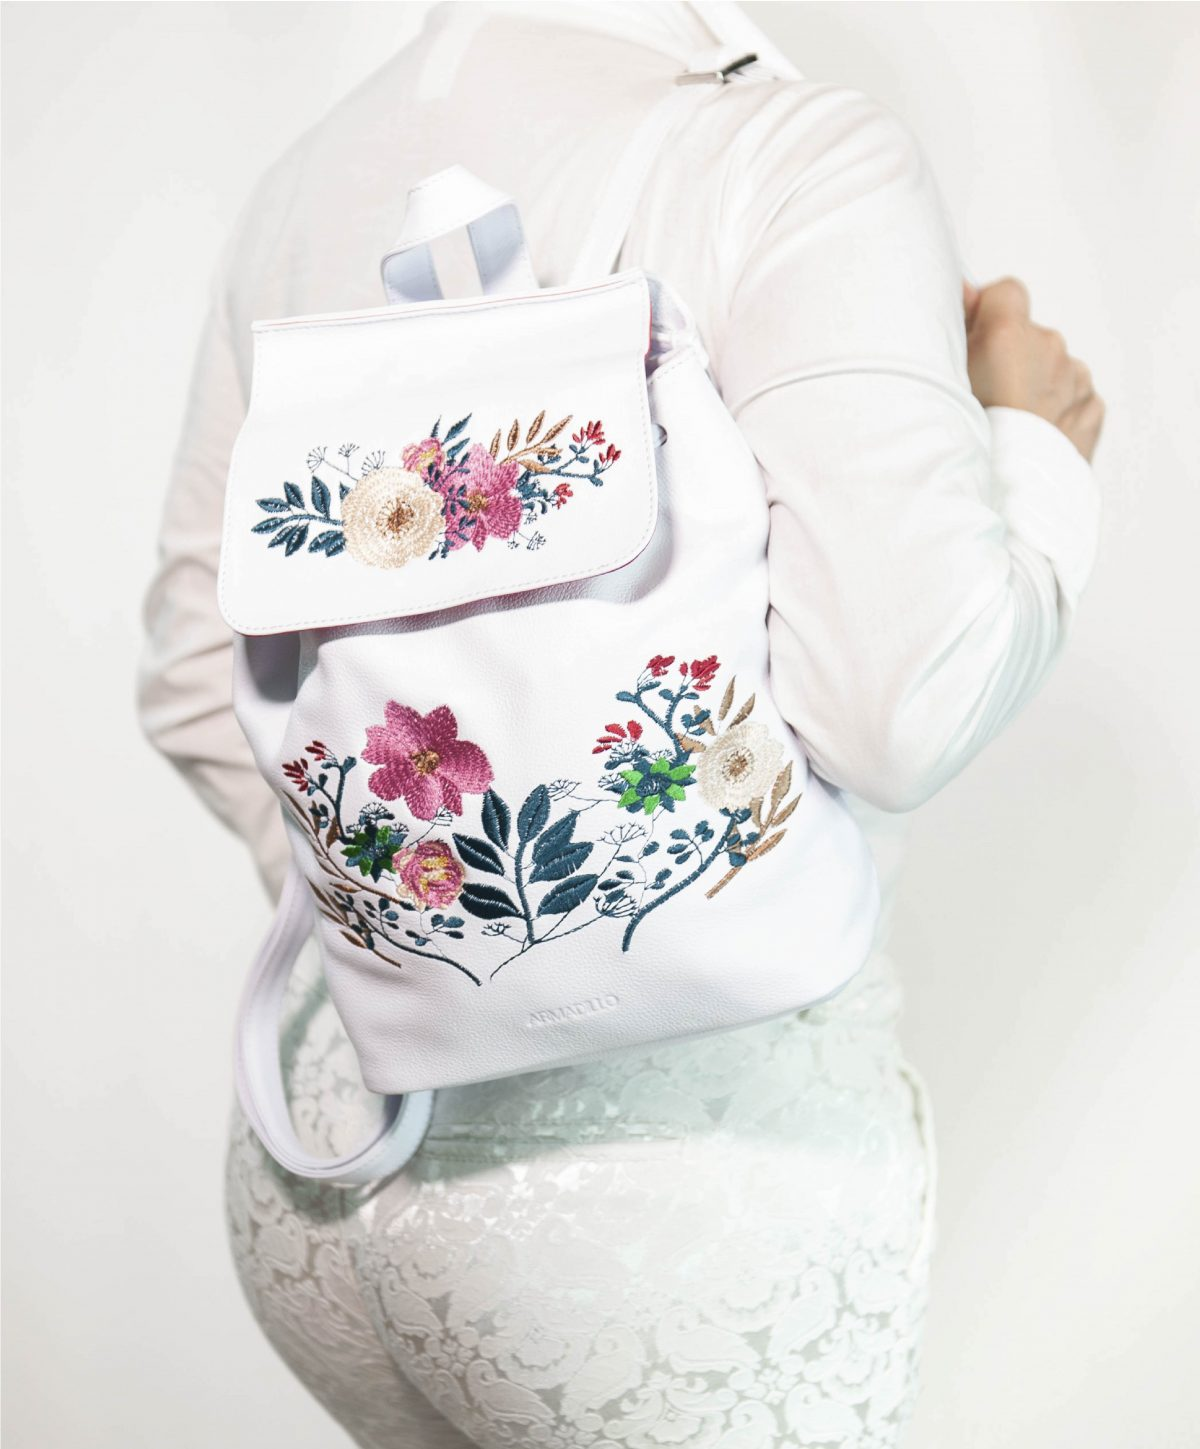 armadillo-leather-handbags-totes-wallets-clutches-backpack-small-leather-goods-accessories-office-travel-gifts-in-canada-white-backpack-embroidery-flowers